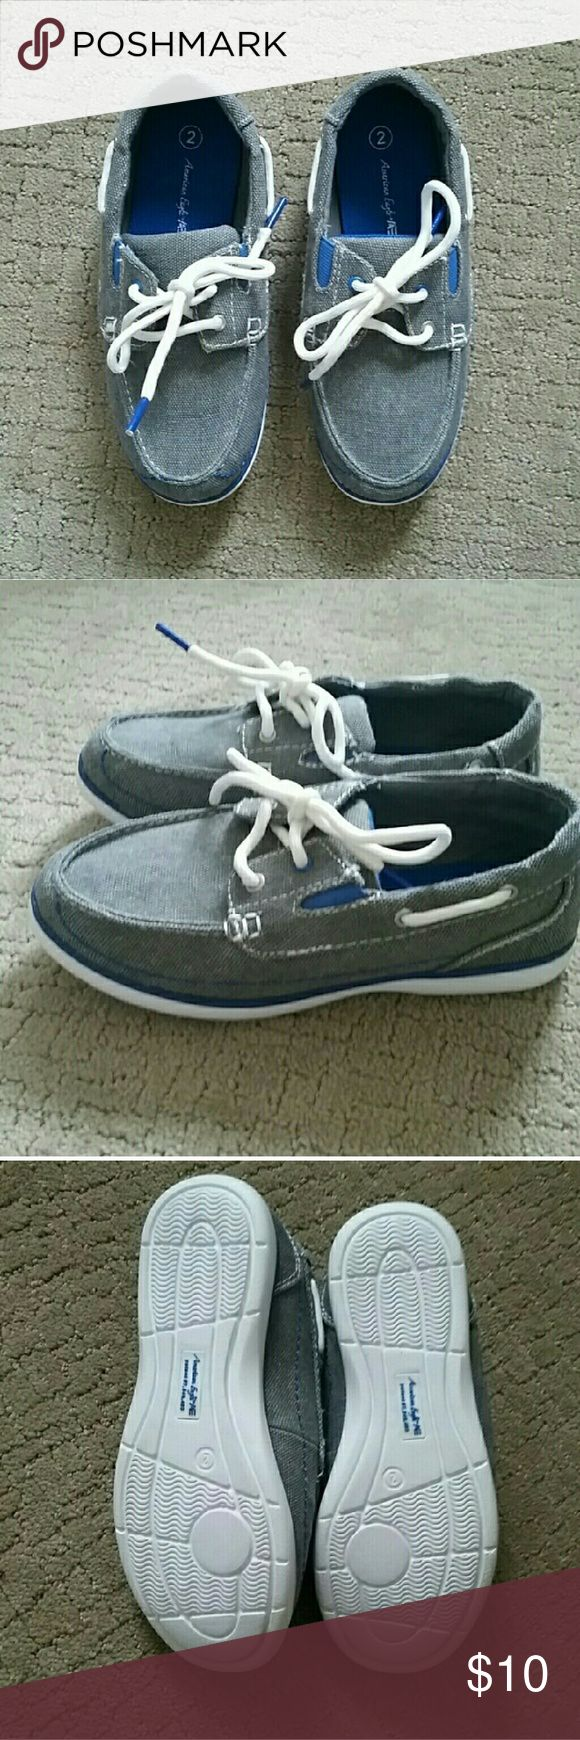 HP Everything Kids Boys Boat Shoes NWOT.  Some little boy will be a dapper fellow in these adorable gray and blue boat shoes. Shoes